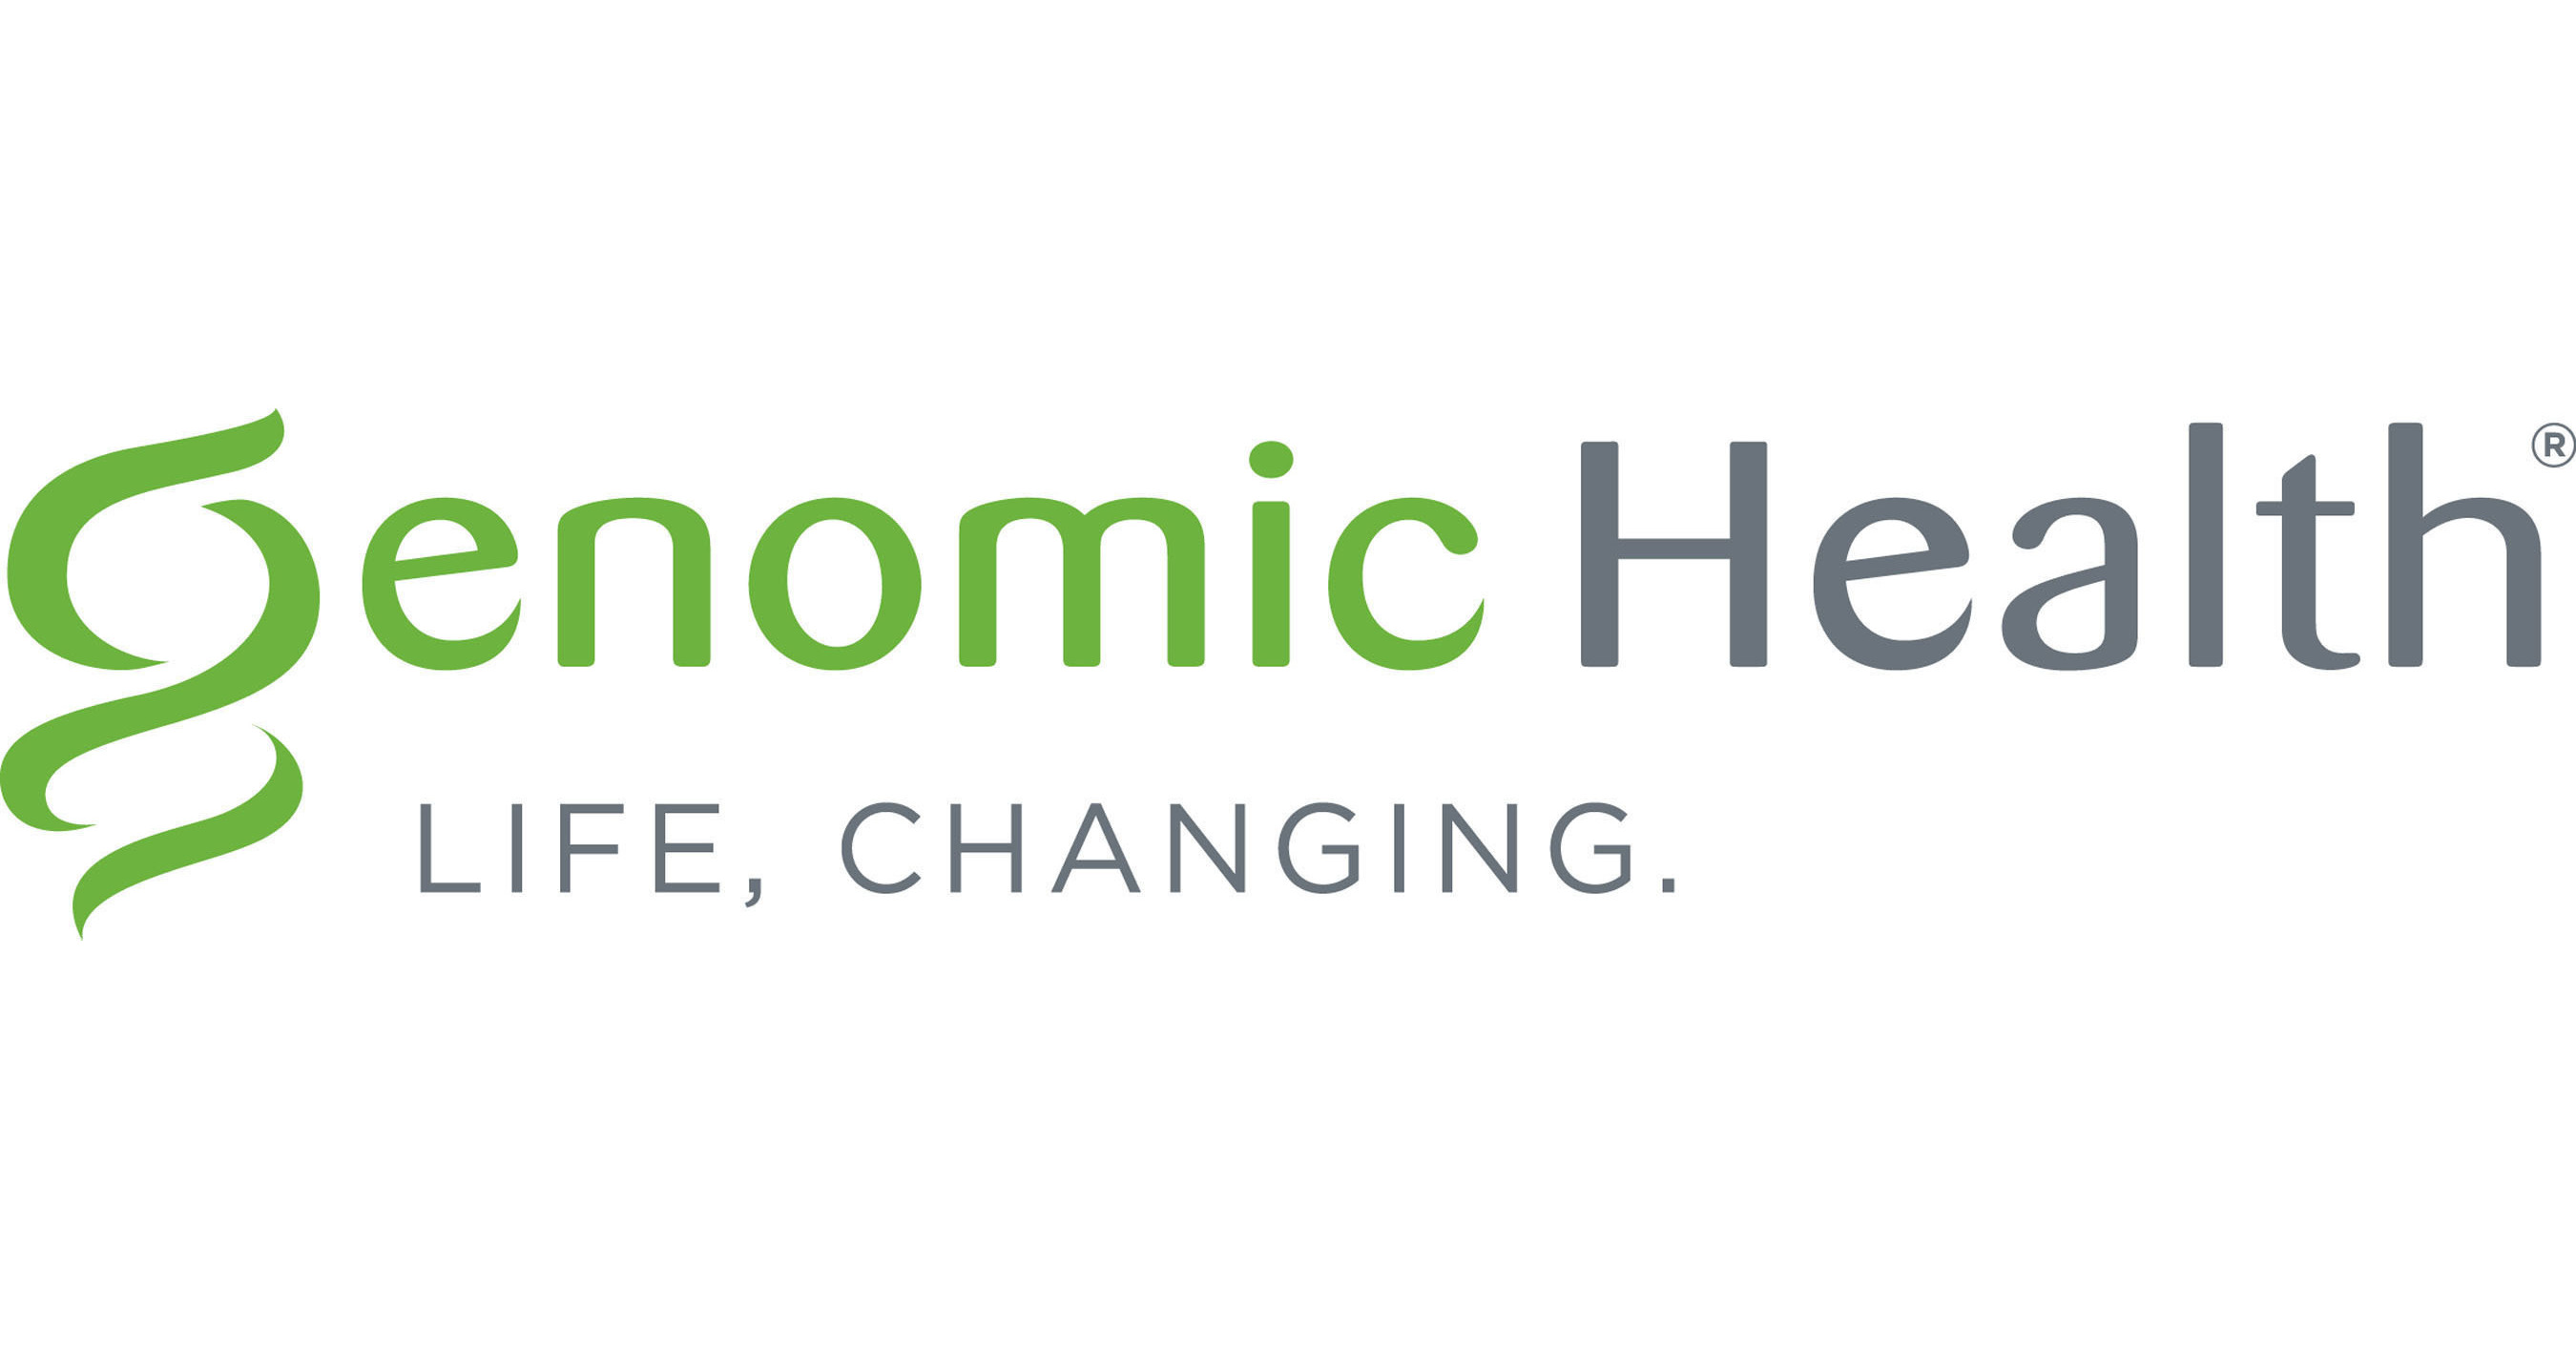 Genomic Health Stockholders Approve Proposed Acquisition by Exact Sciences